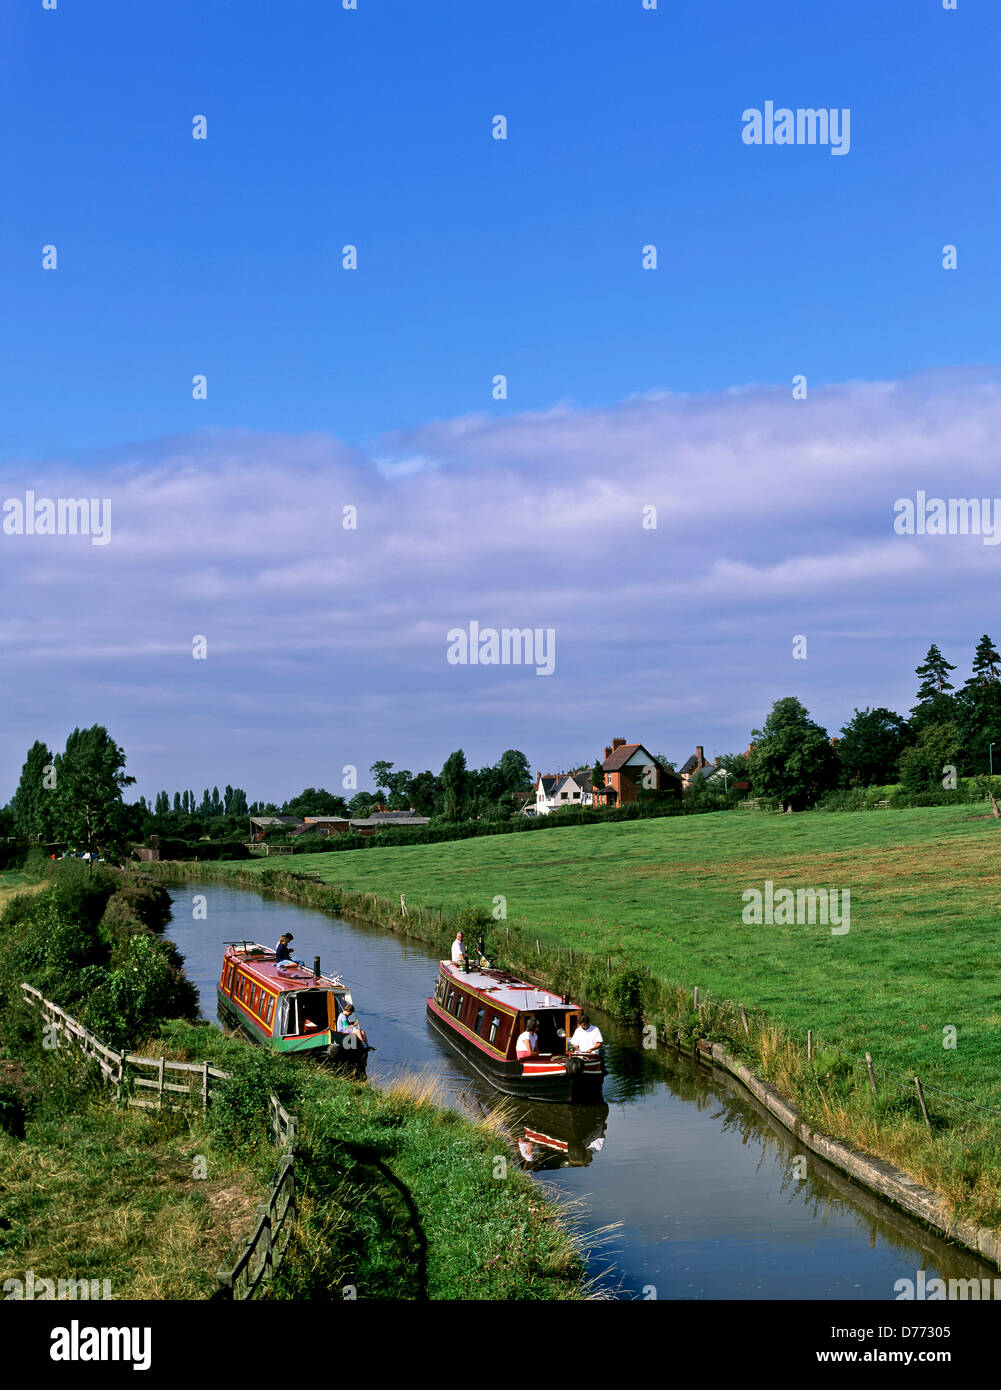 8680. Narrow boats on the Oxford canal, Warwickshire, England, UK, Europe - Stock Image